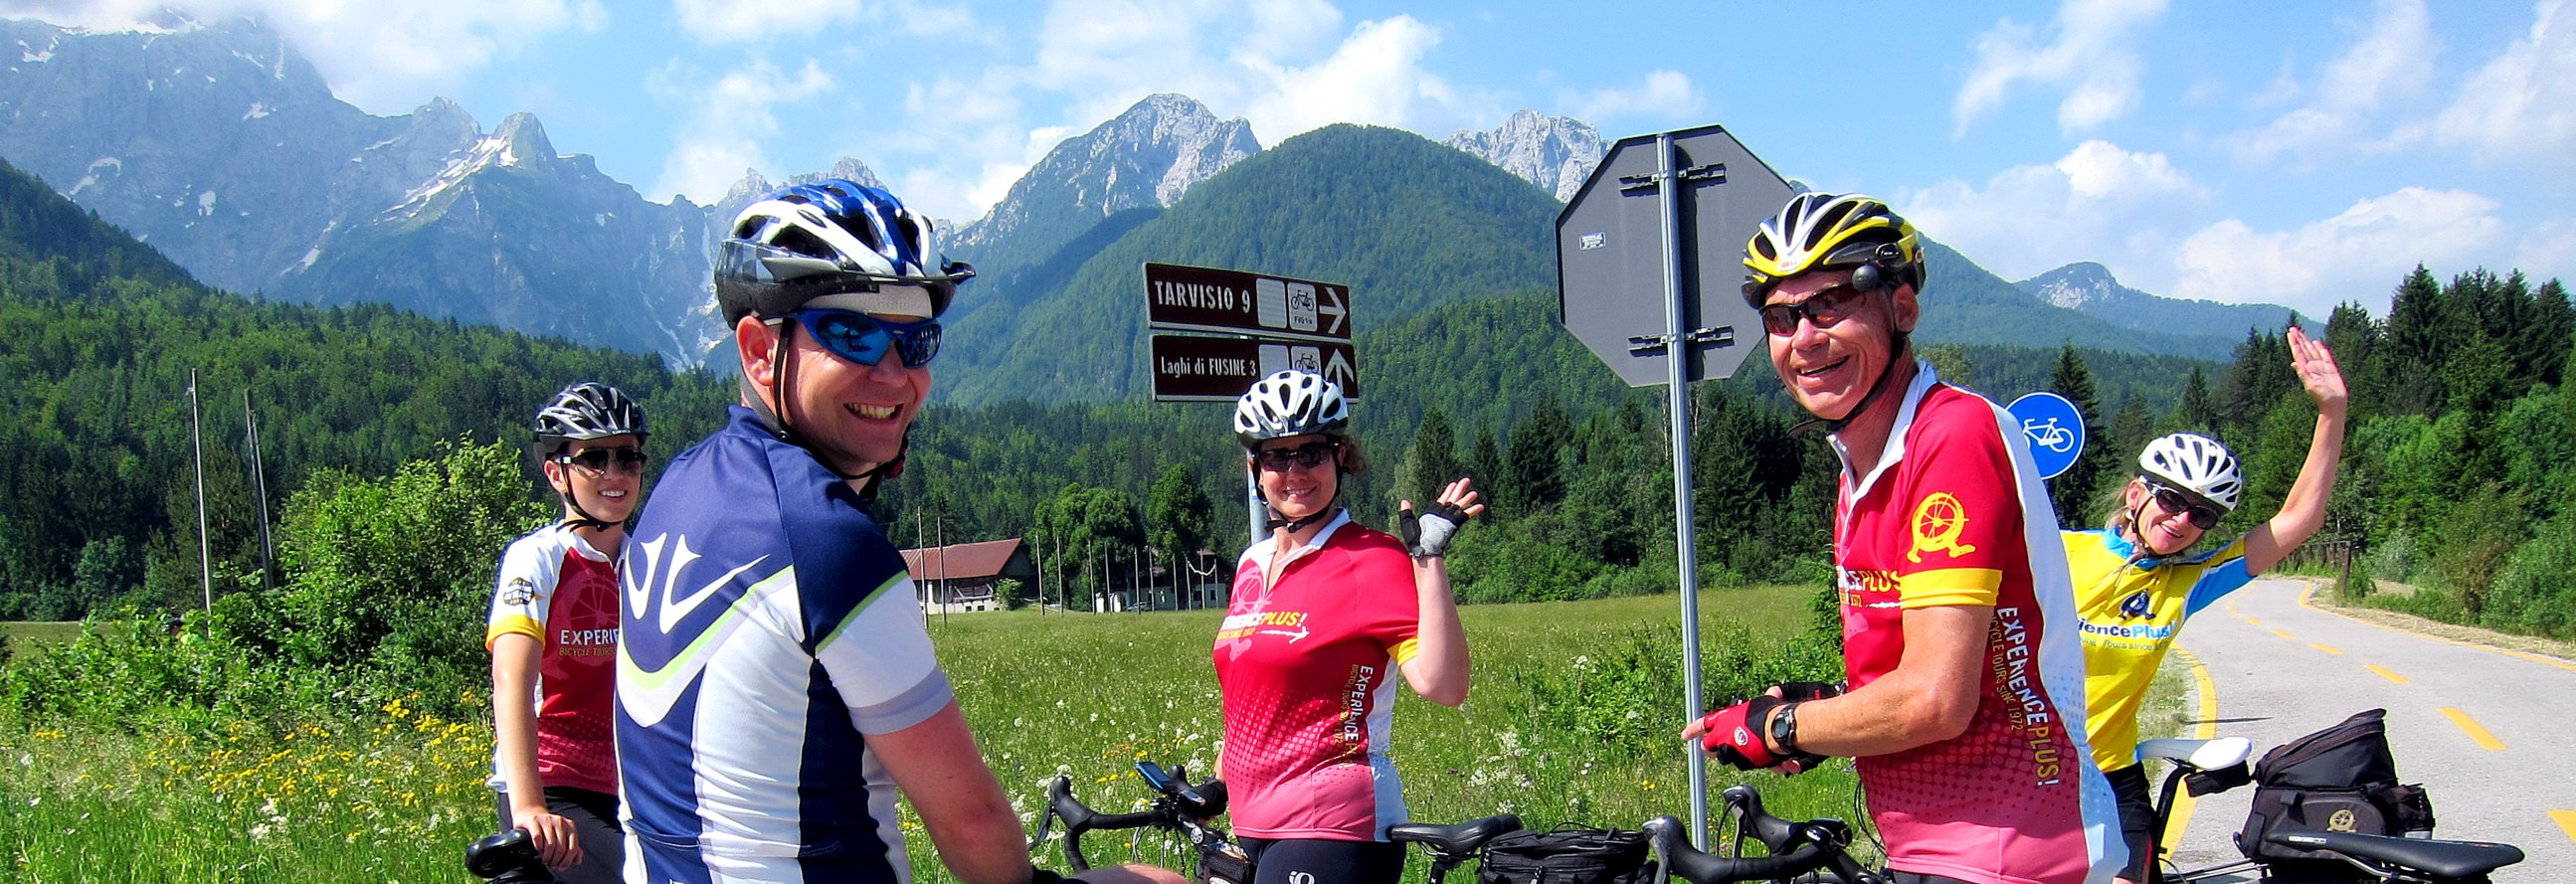 5 happy cyclists on a guided tour in Slovenia